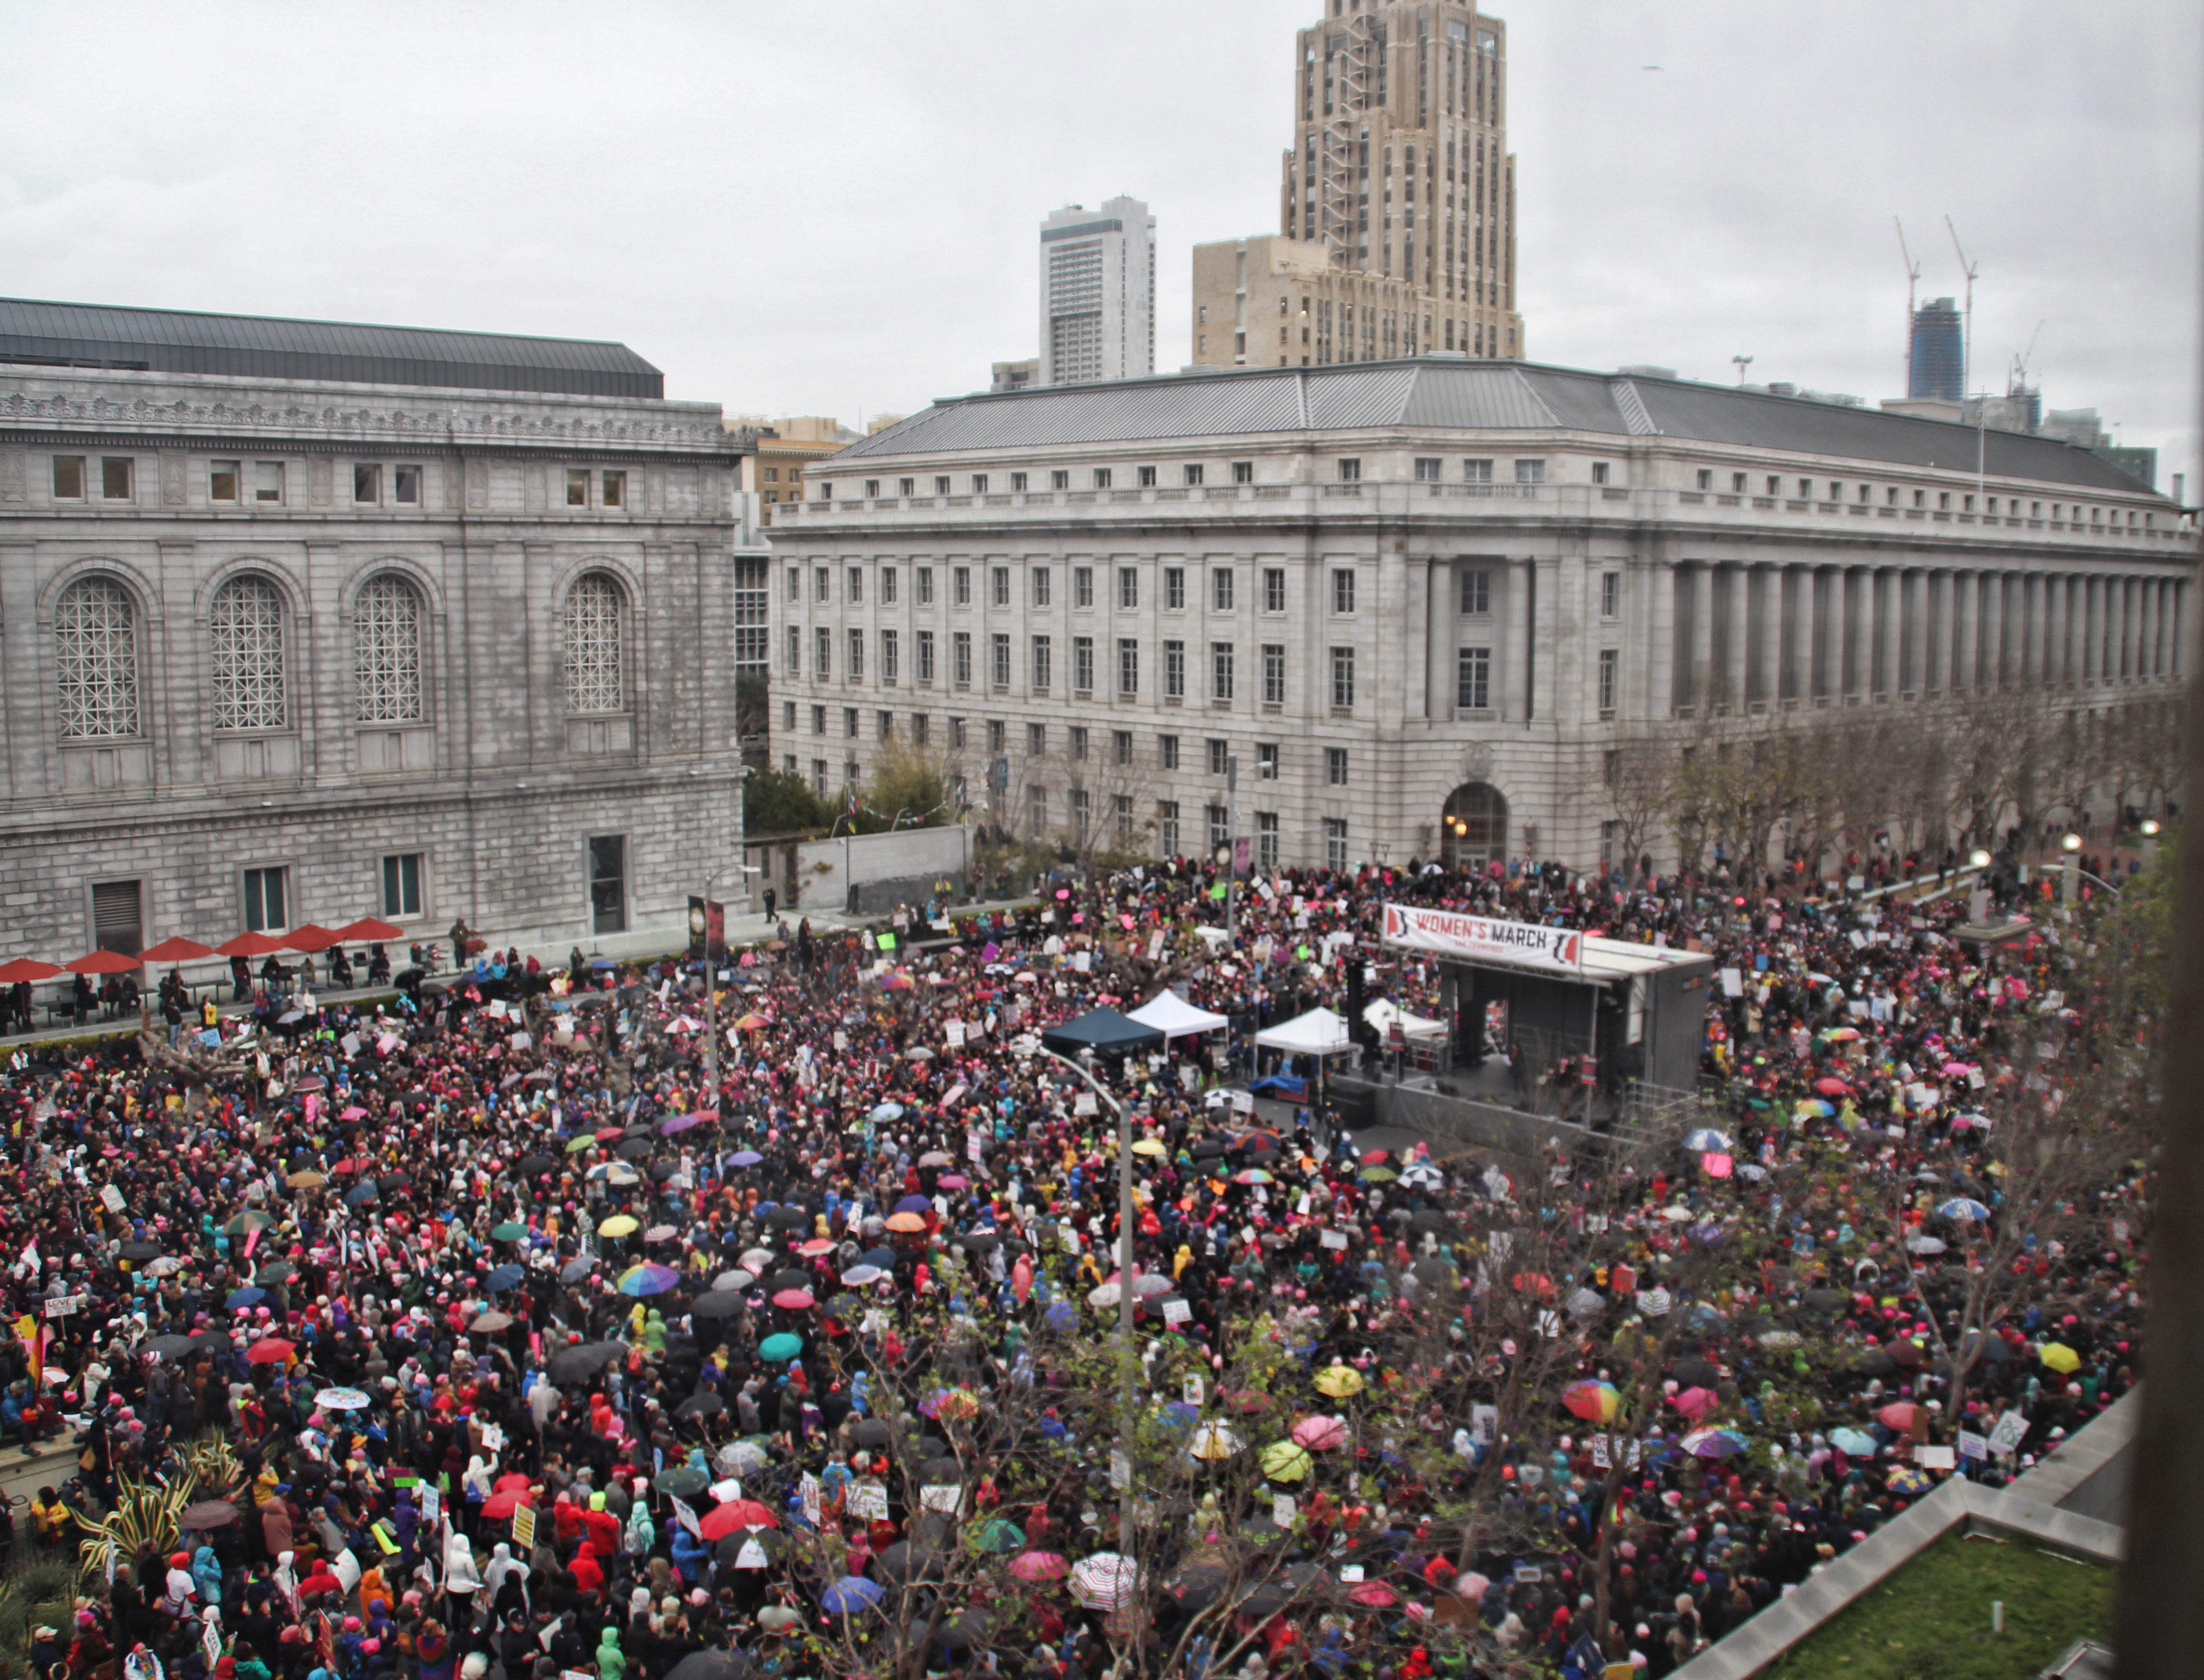 A huge crowd packed the Civic Center -- and even more joined later